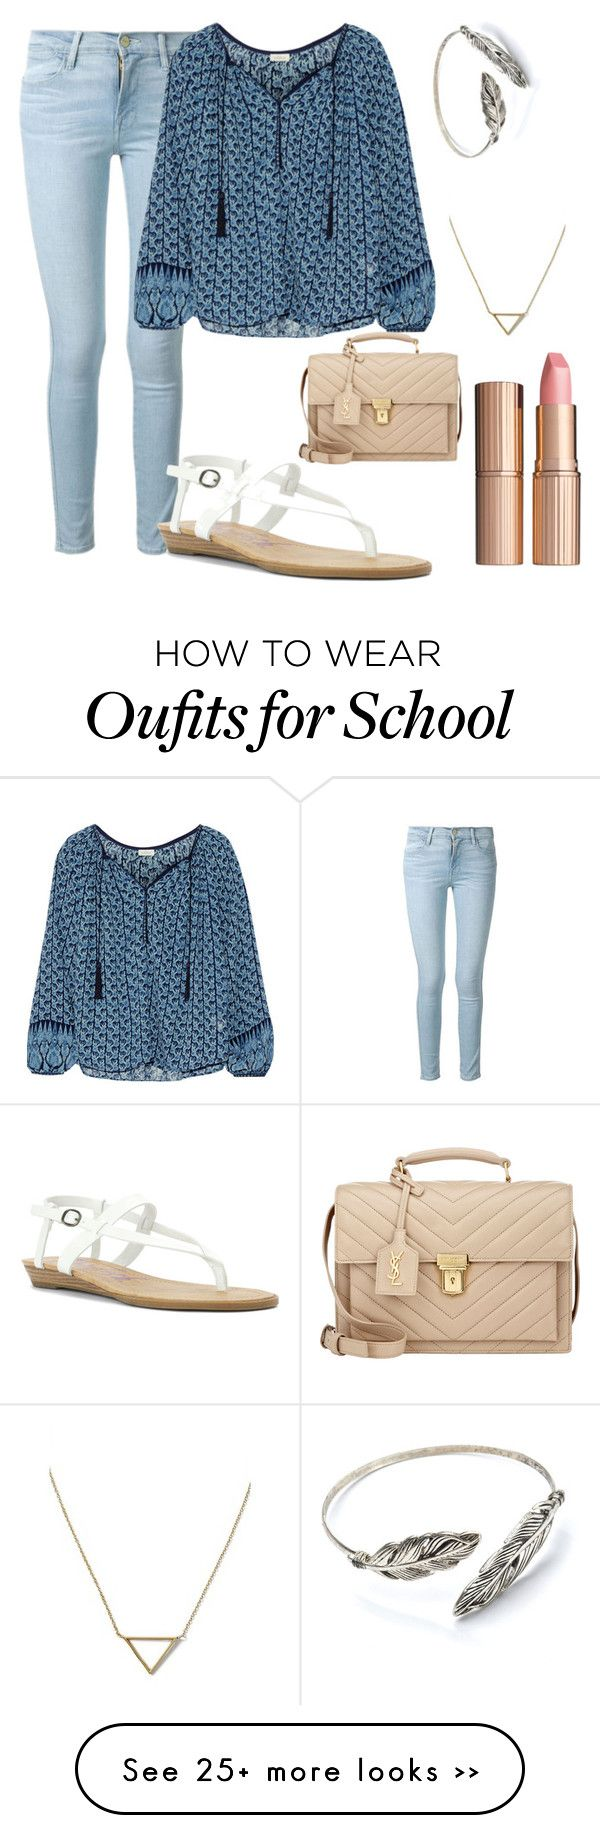 """""""First day of school!!!!"""" by emilystoneman on Polyvore featuring Frame Denim, Talitha, Blowfish, Yves Saint Laurent, Banana Republic and Charlotte Tilbury"""